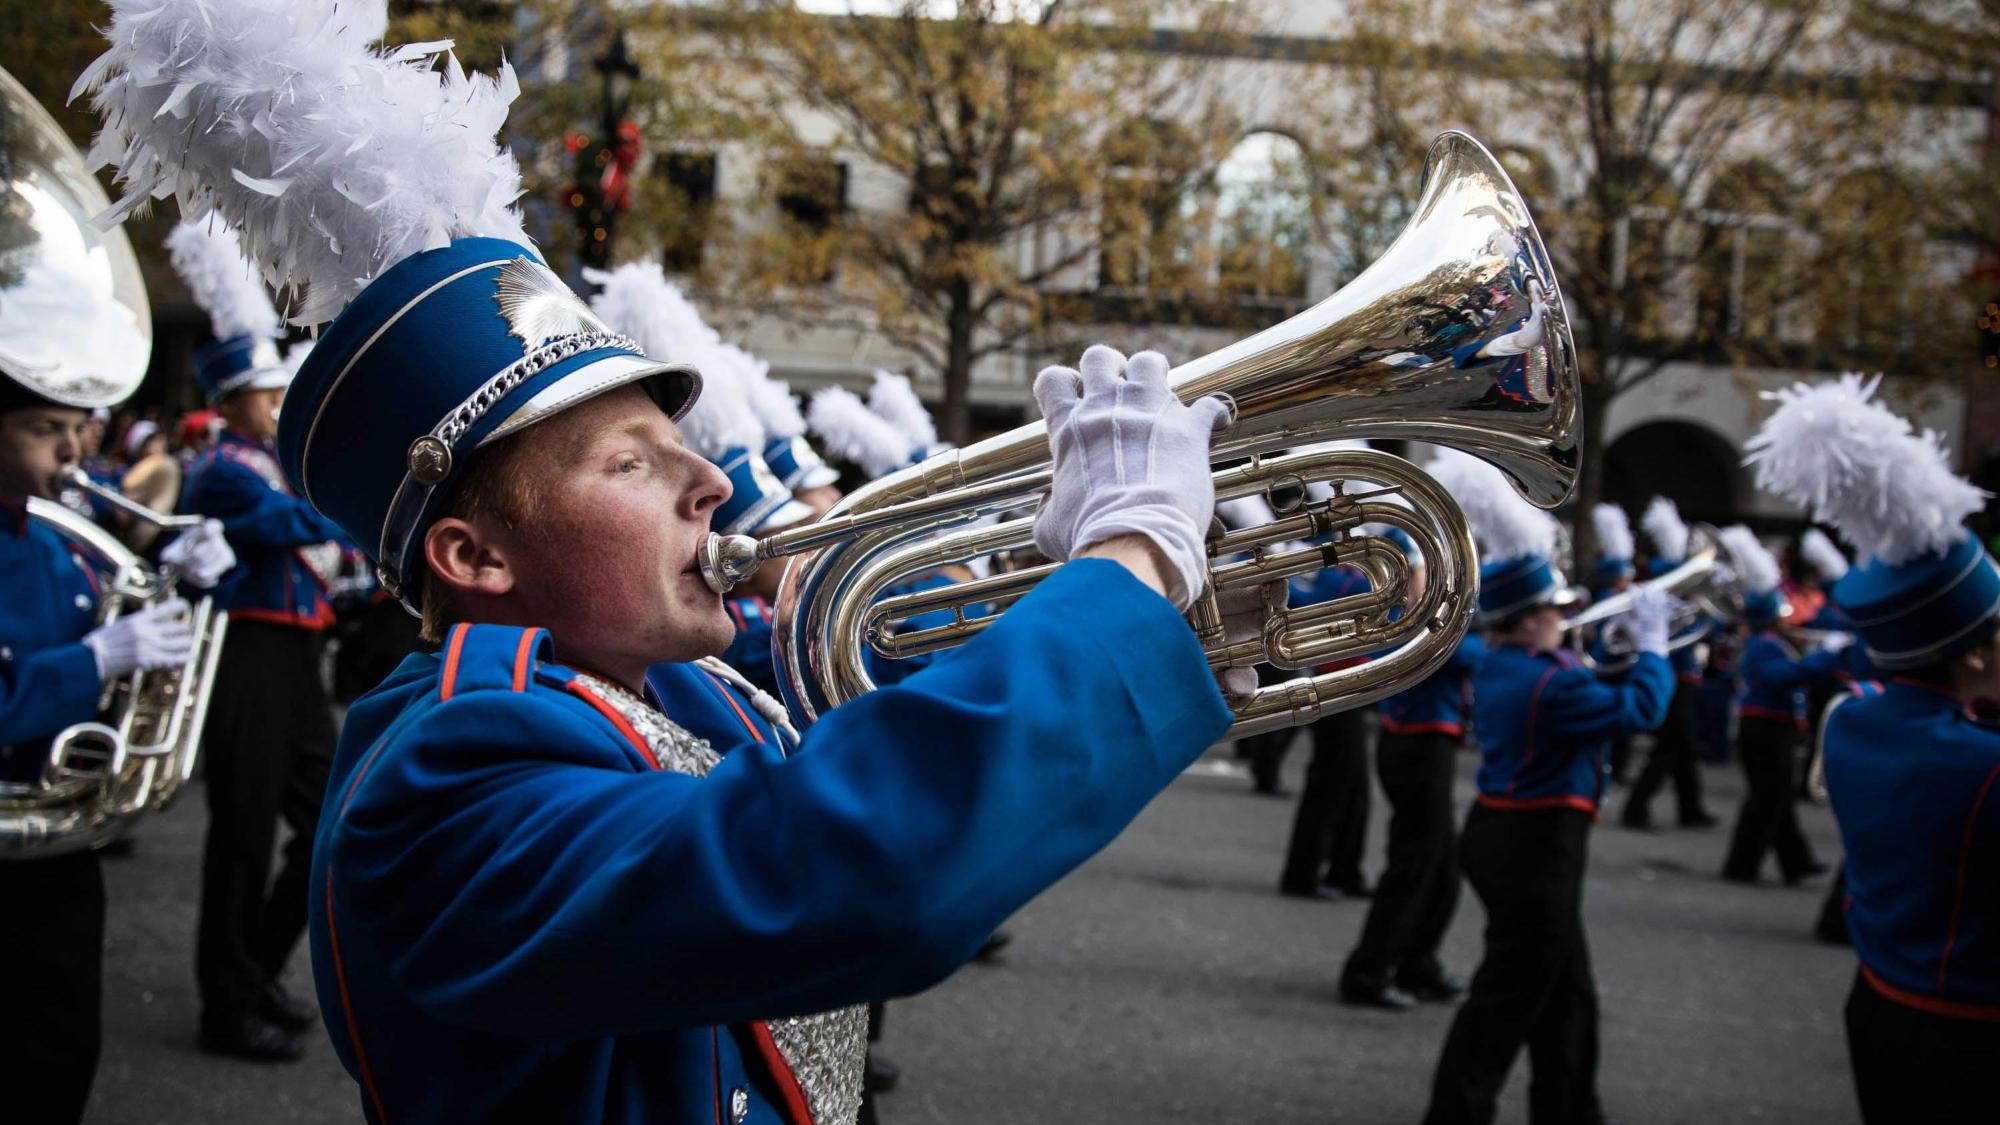 Parades Johnston County Nc Christmas Parade 2021 Here Are The Details On 30 Christmas Parades And Tree Lighting Ceremonies Wral Com